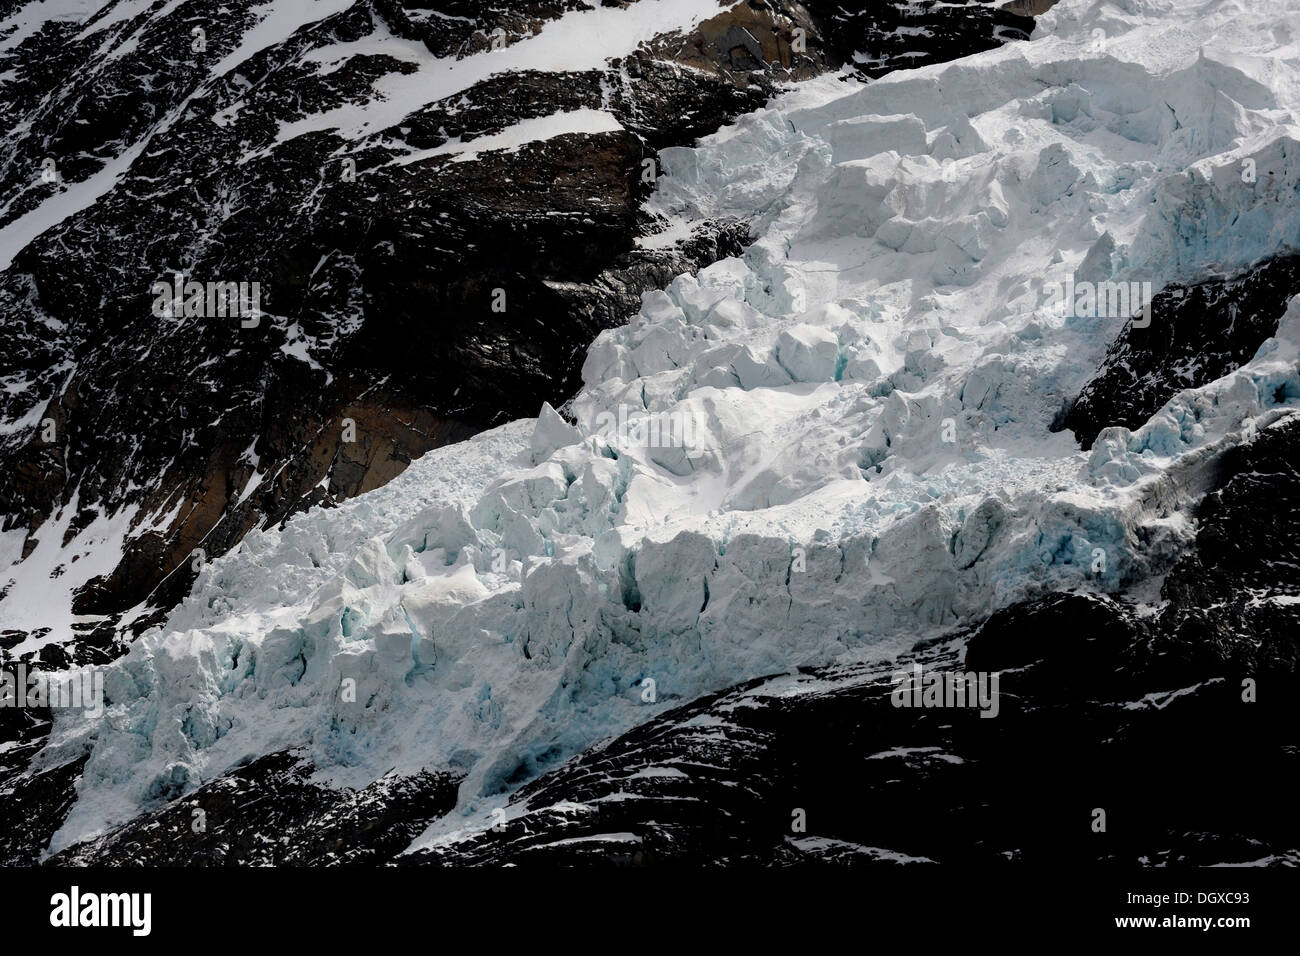 Icefall, Patagonia, Chile, South America - Stock Image